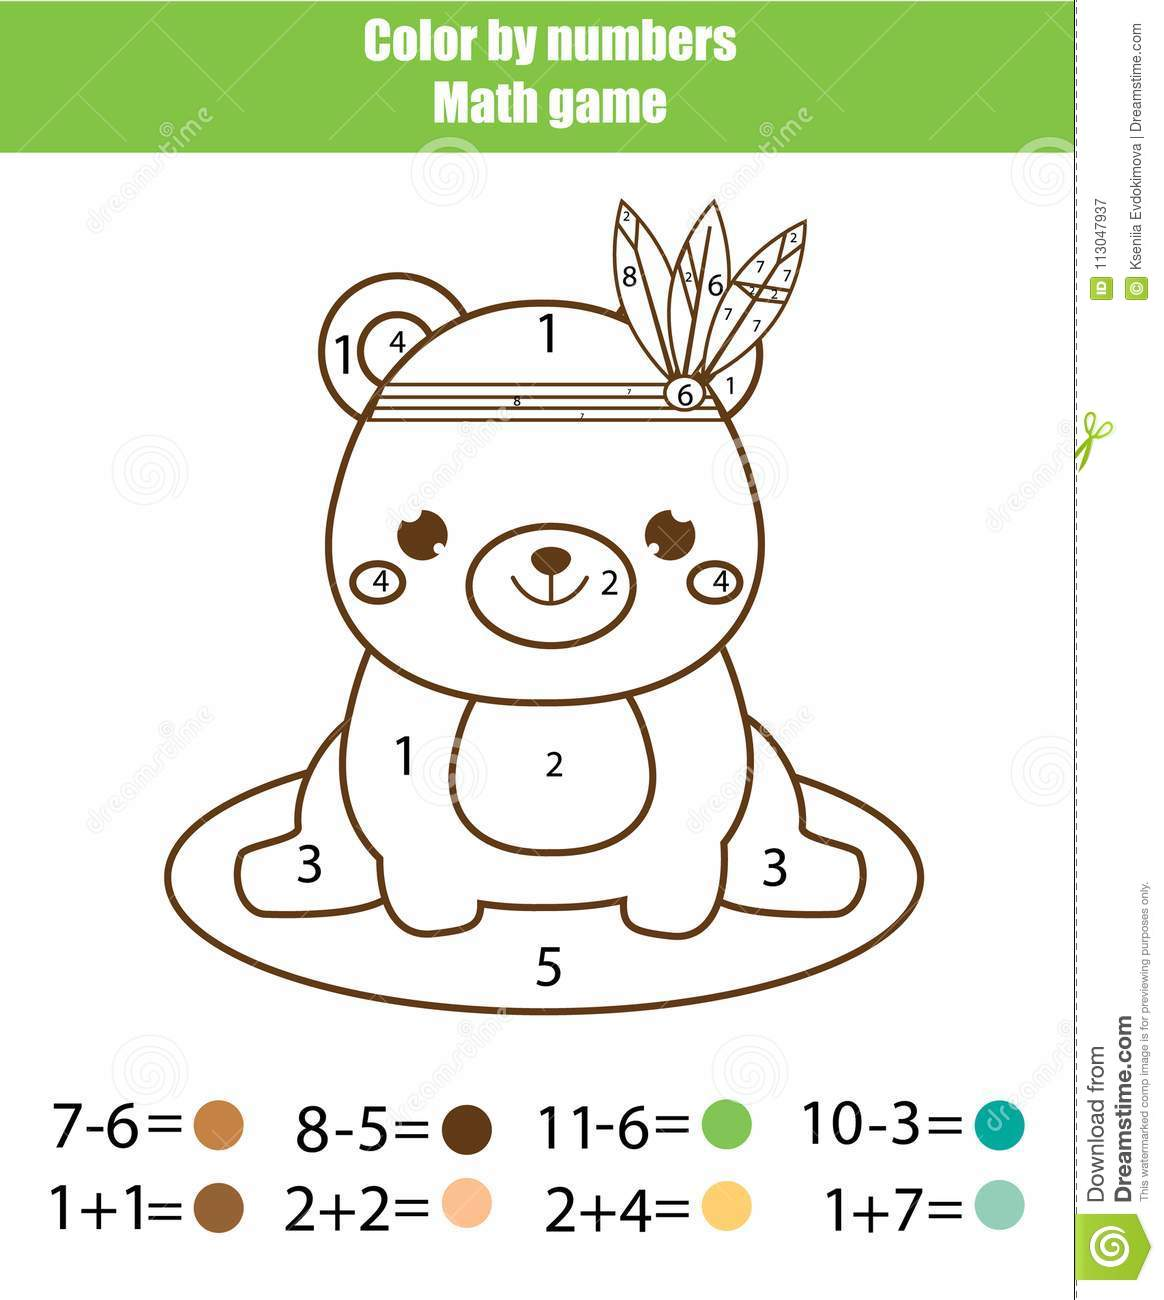 Children educational game mathematics actvity color by numbers printable worksheet coloring page